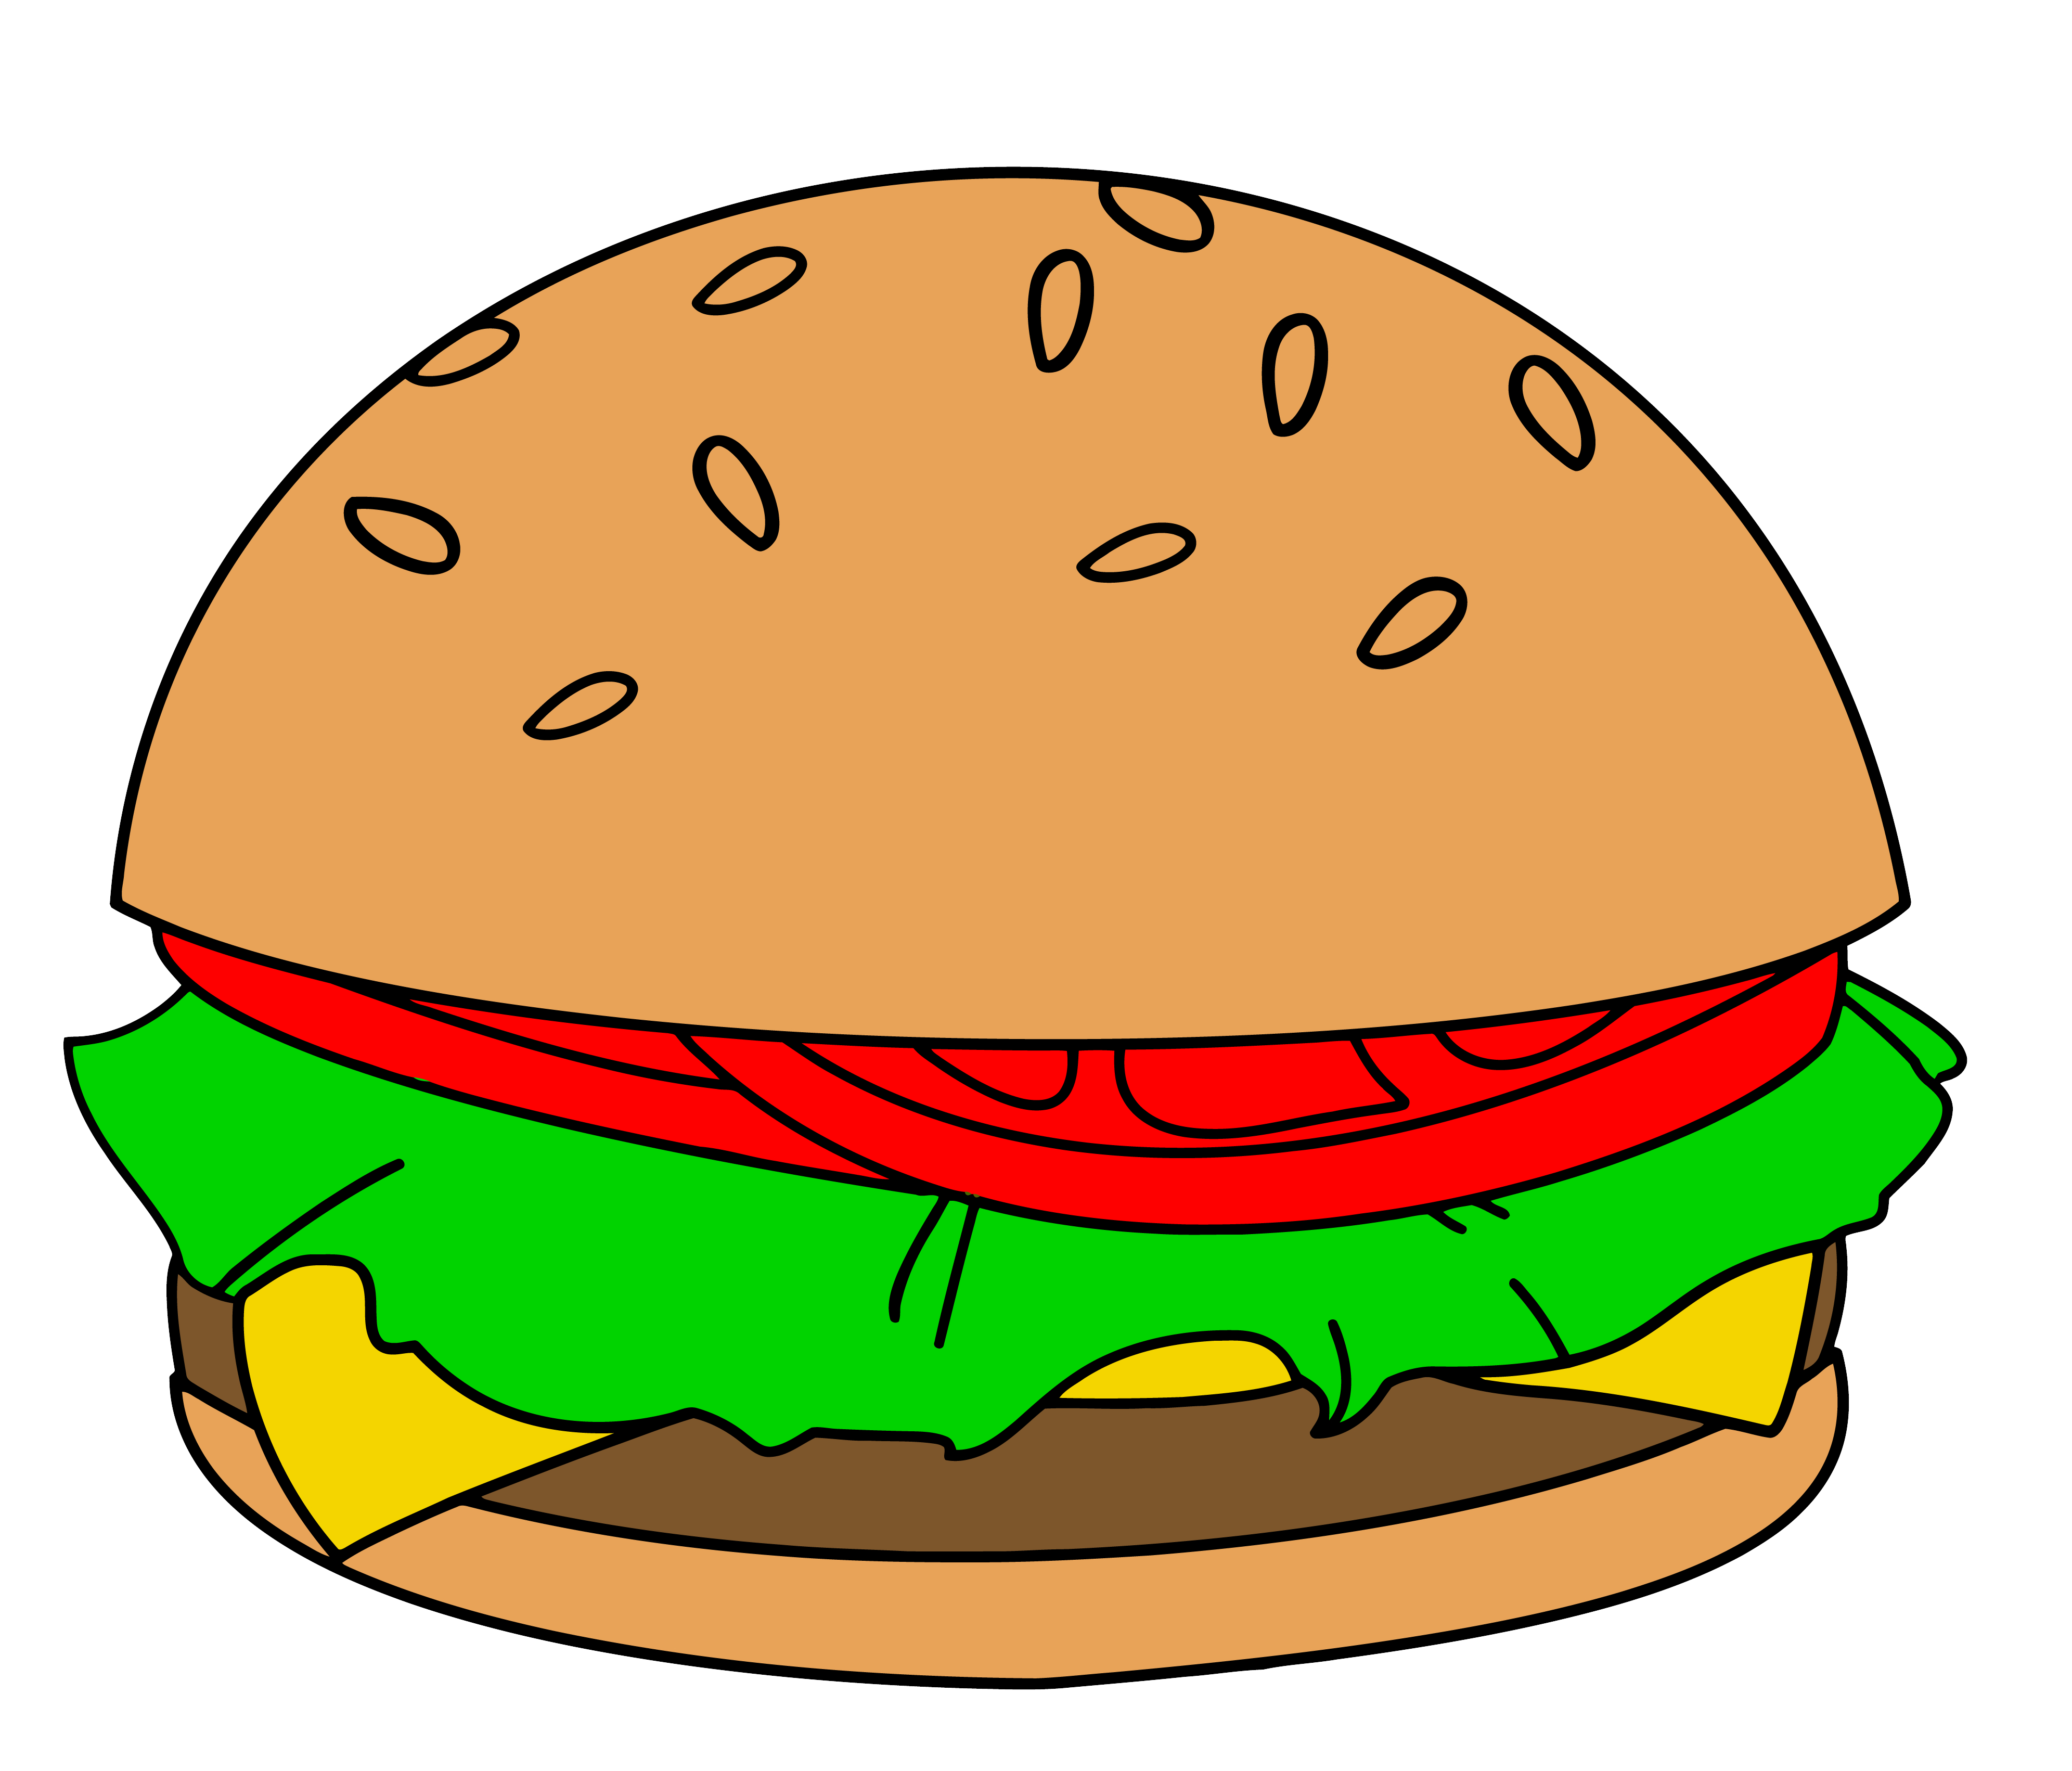 Hamburger clipart comic. Cute cartoon pencil and